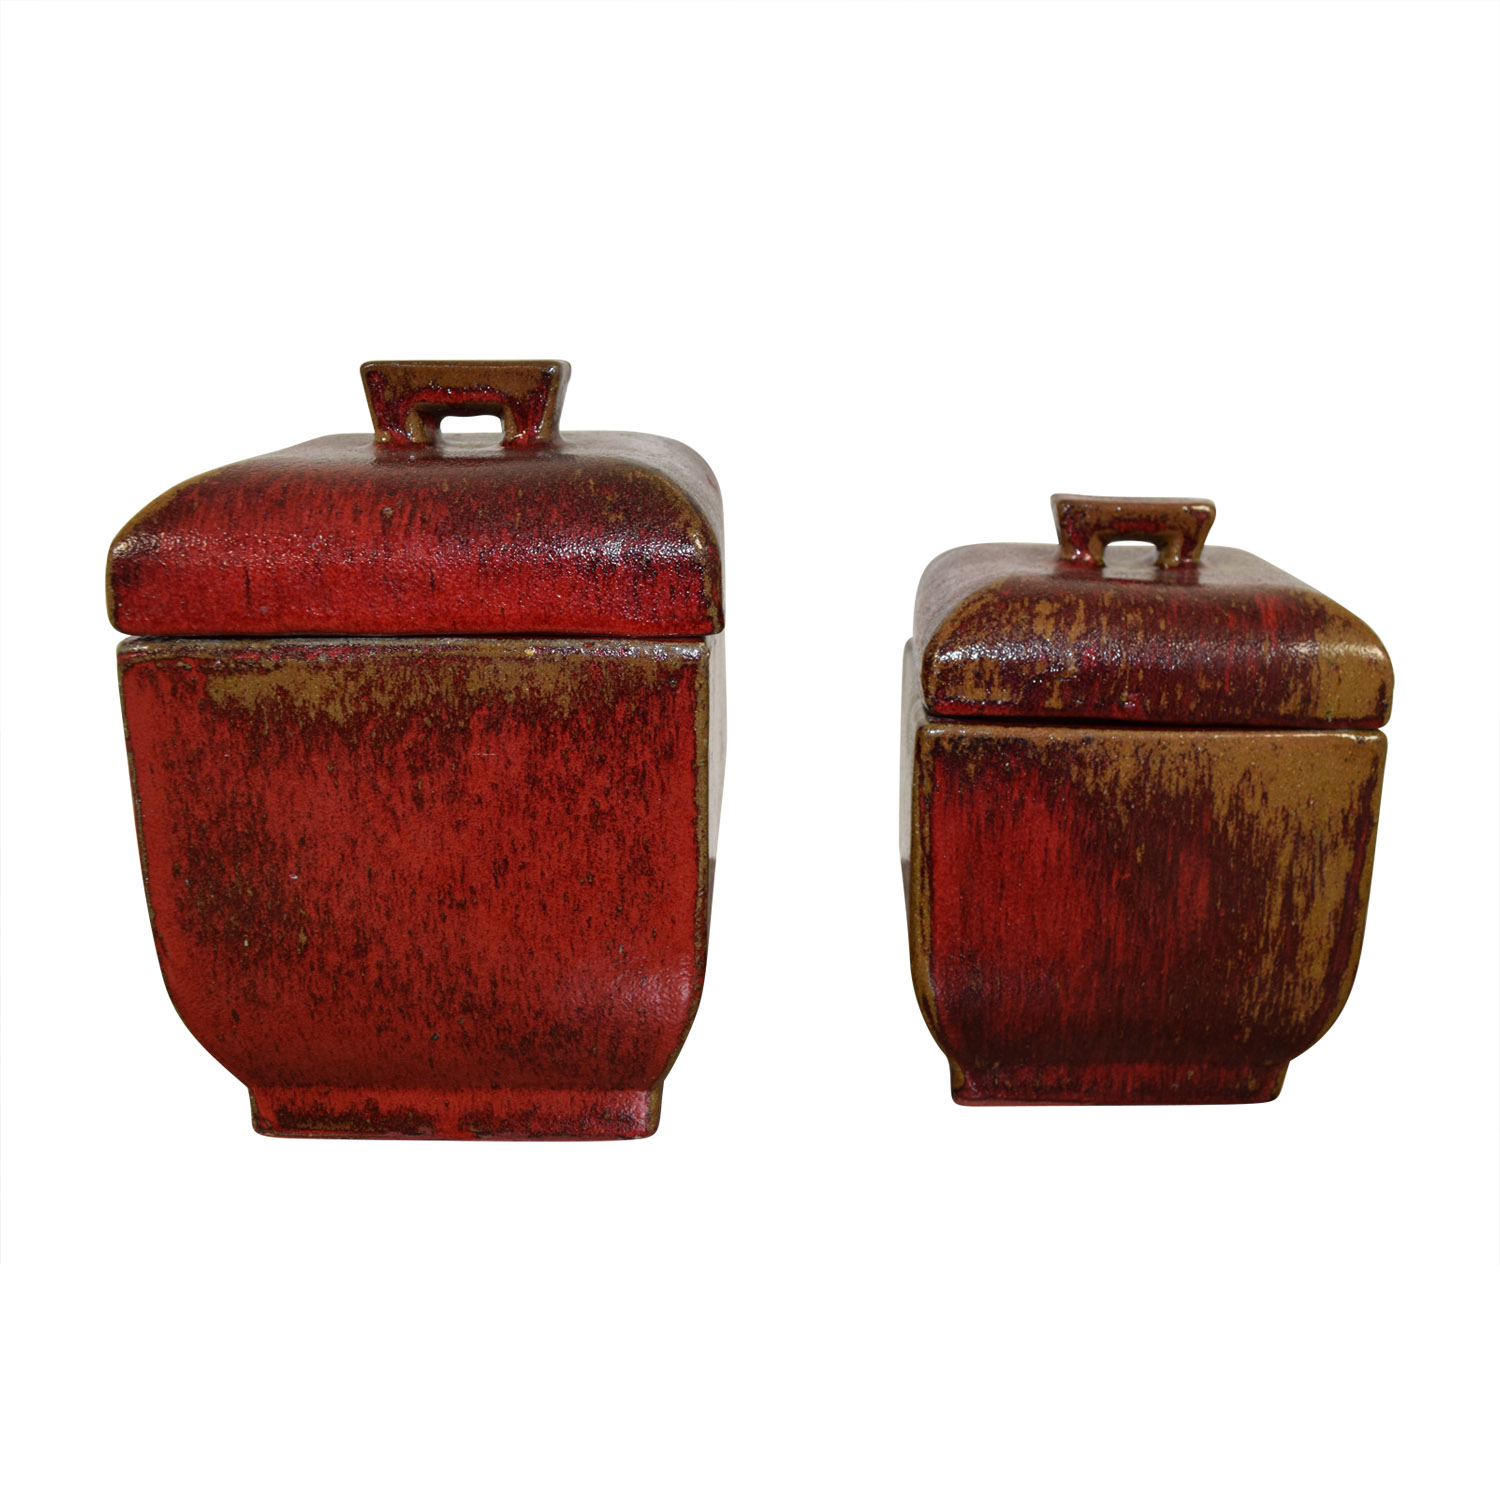 Red Ceramic Canisters dimensions